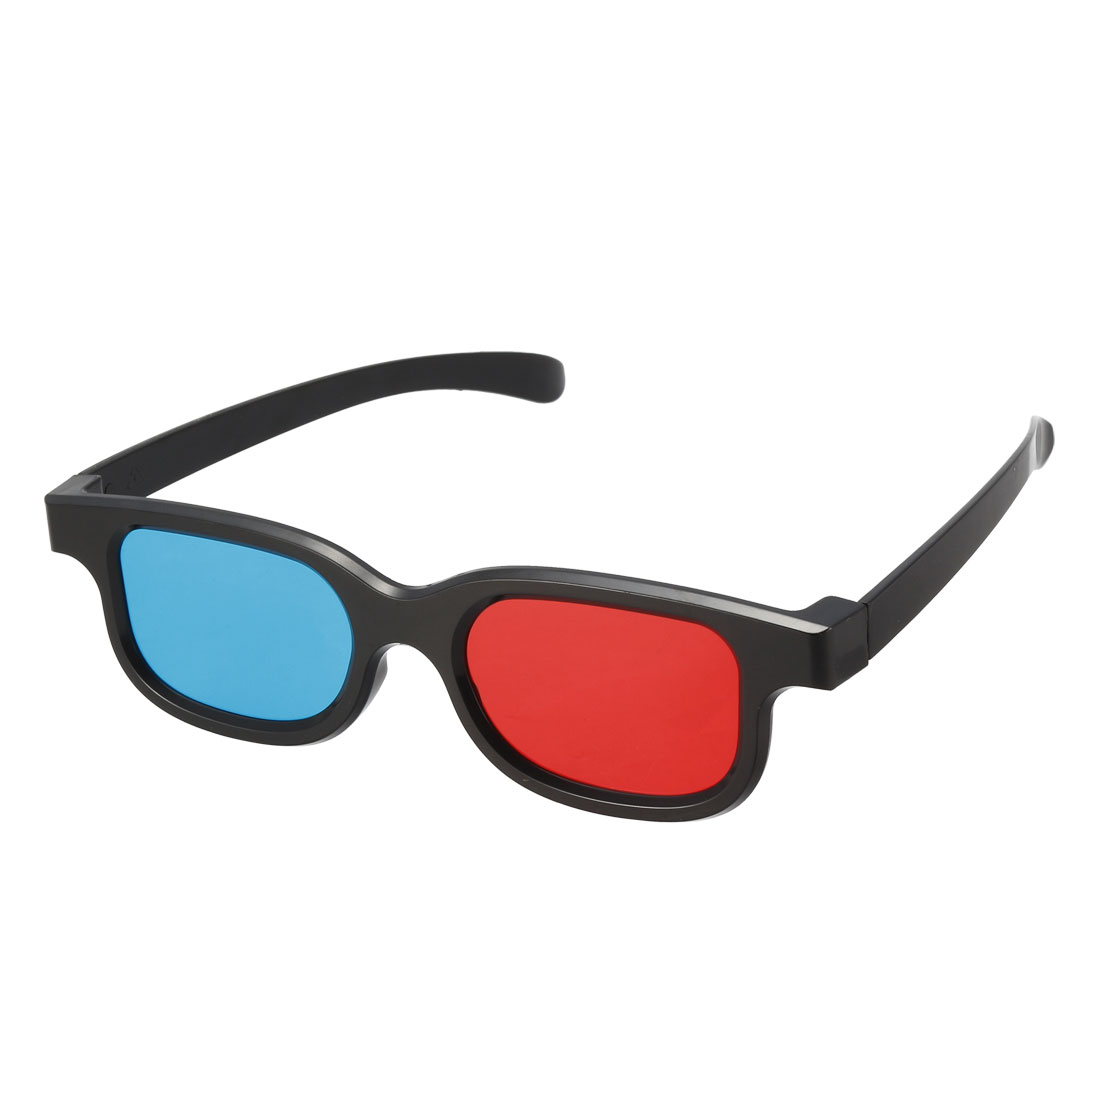 Red-Blue 3D Glasses 3D Visoin Glass for Red and Blue Format Movie/Picture